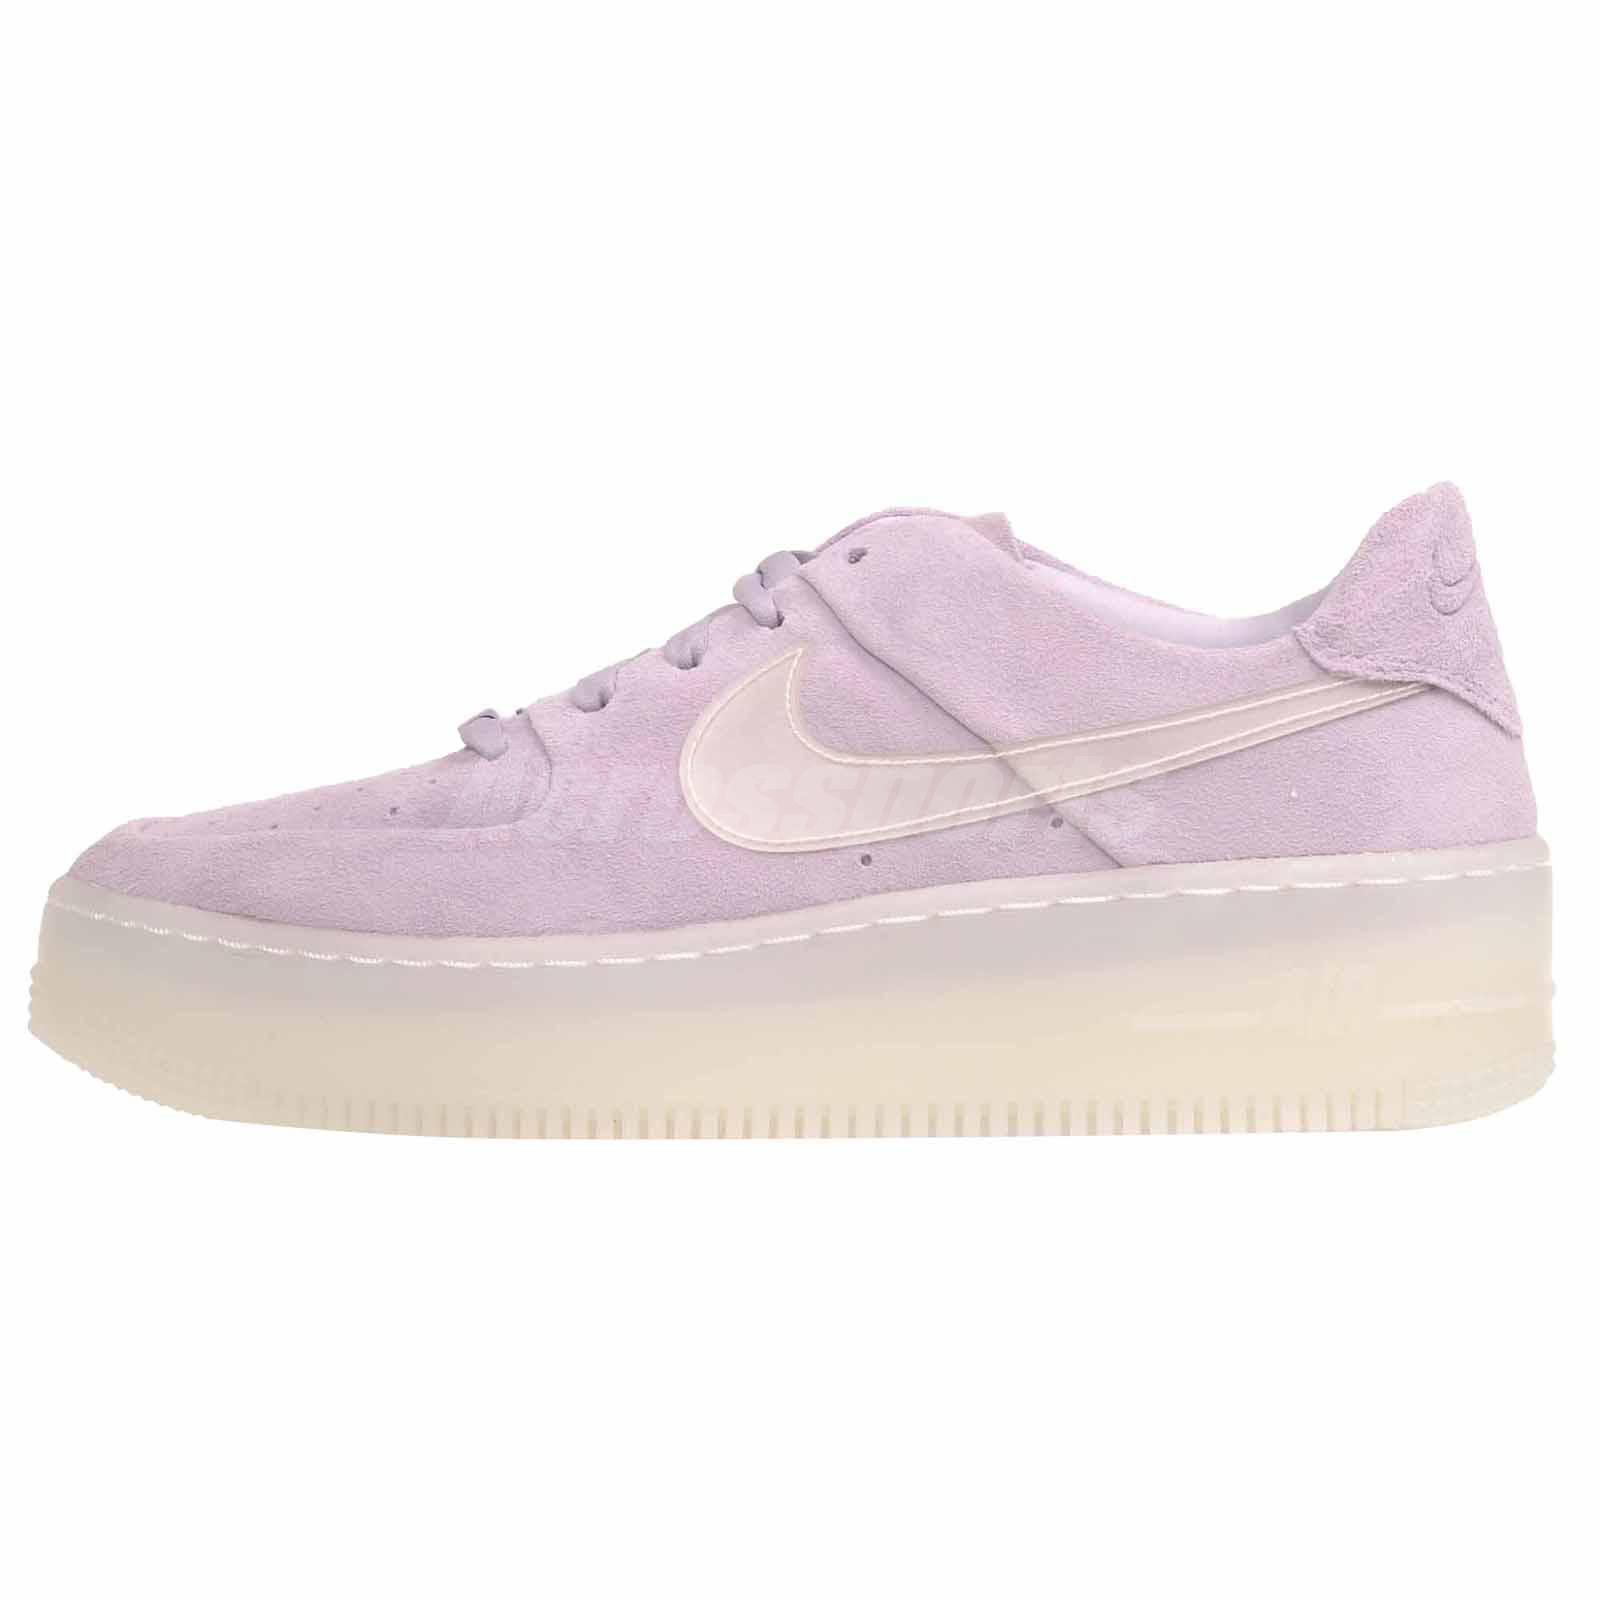 online retailer 372ab 088dc Details about Nike W AF1 Sage Low XL Casual Womens Shoes Violet Mist  AR5409-500